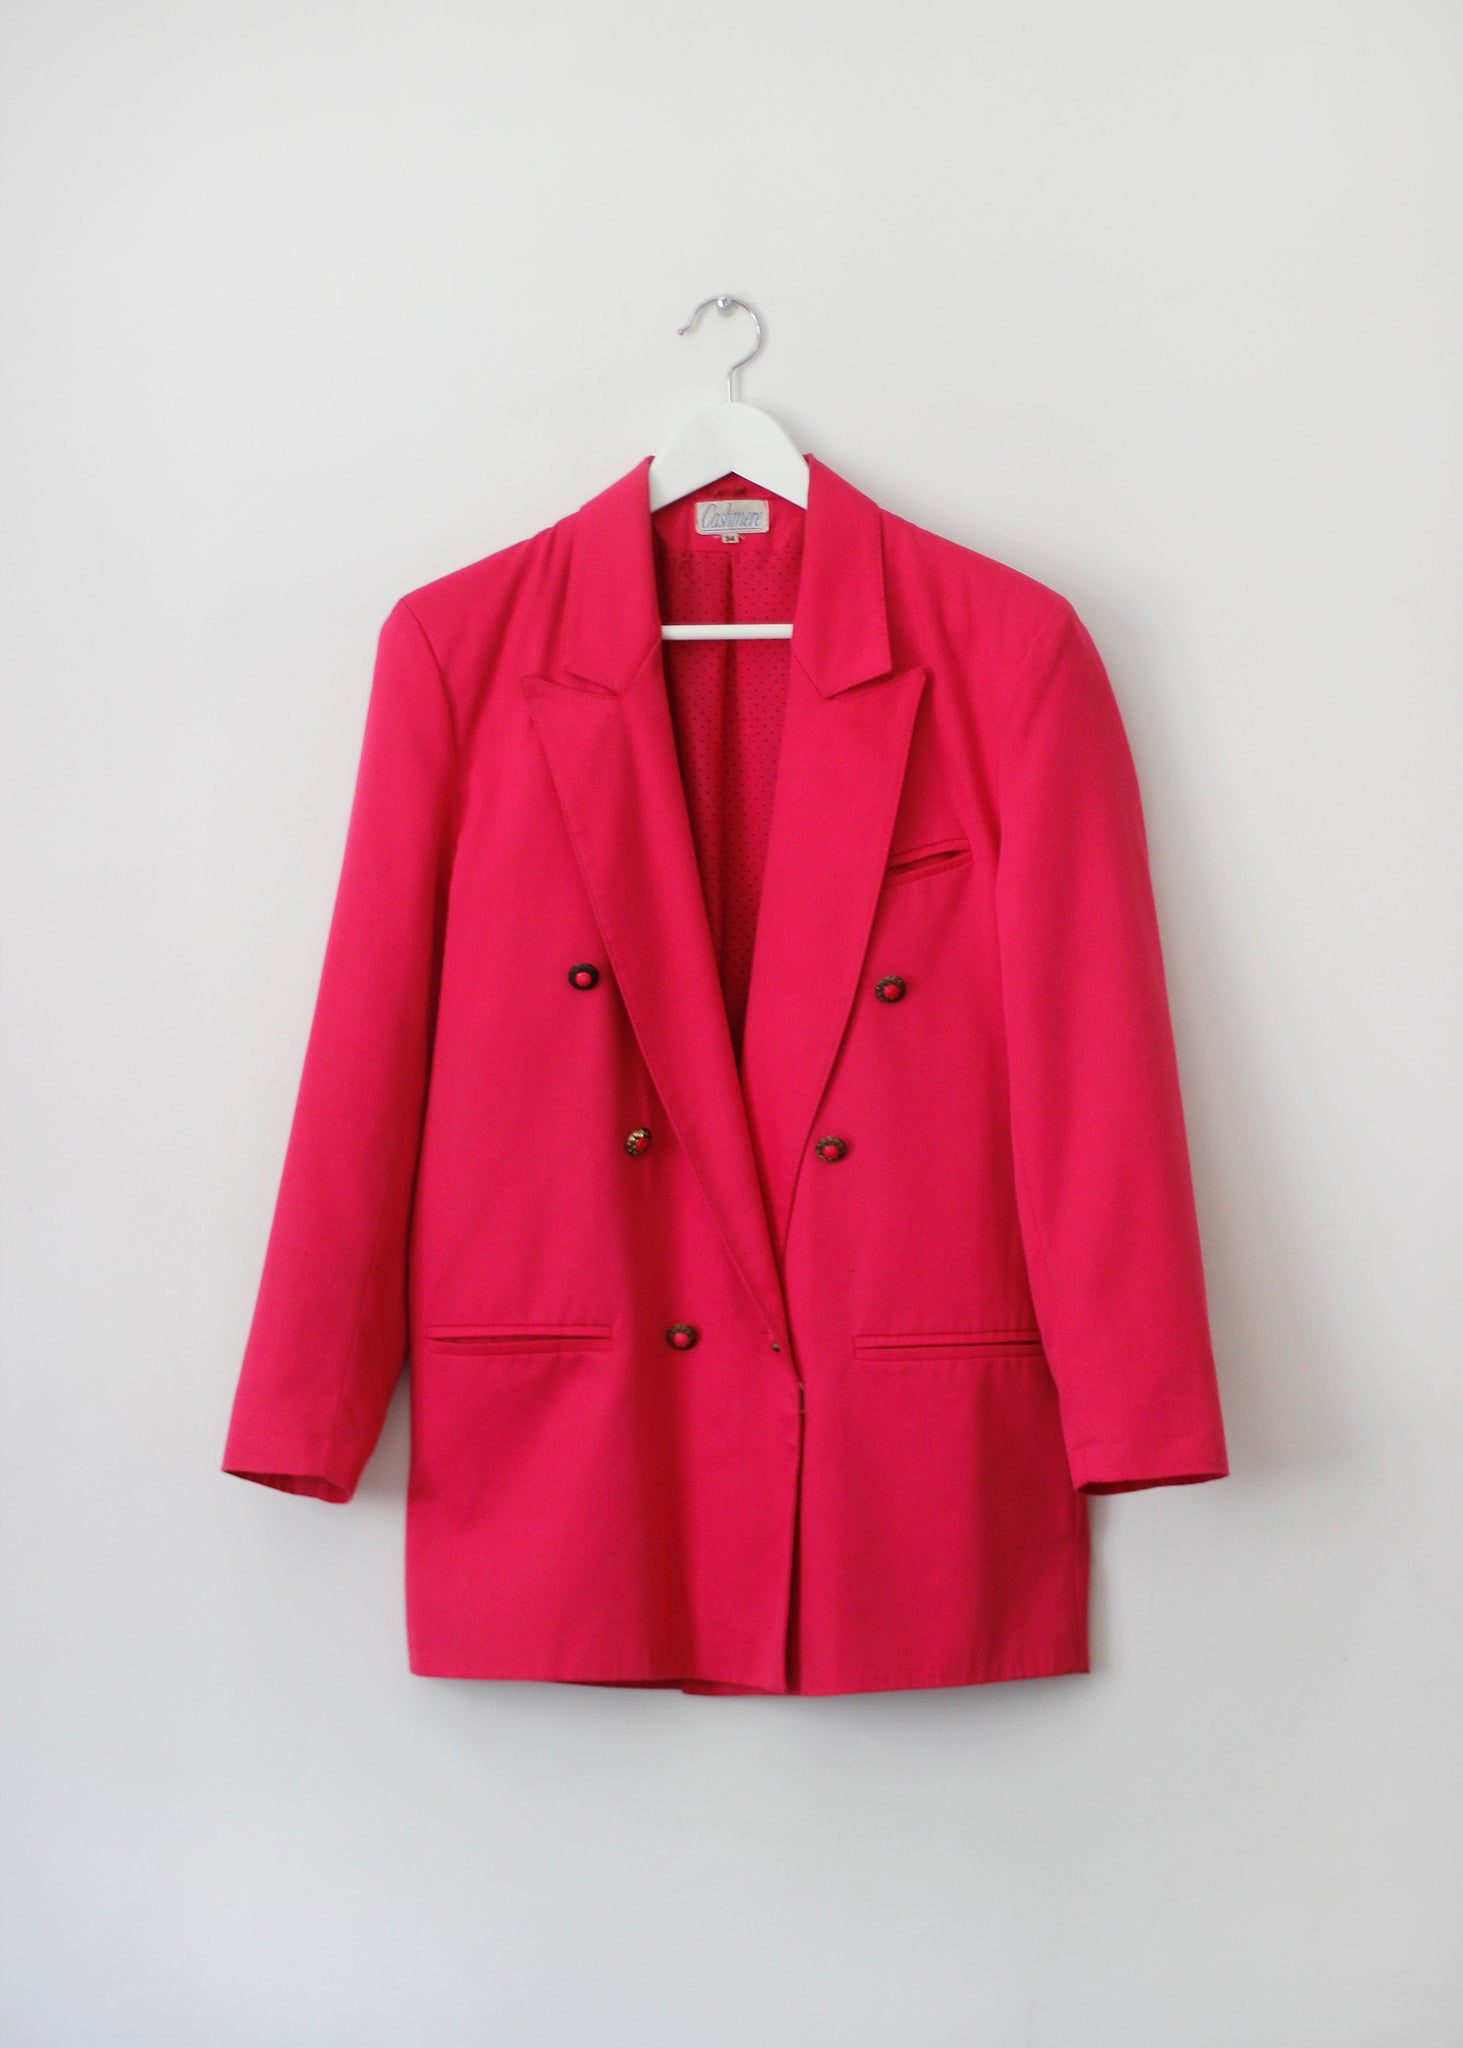 curated pink blazer